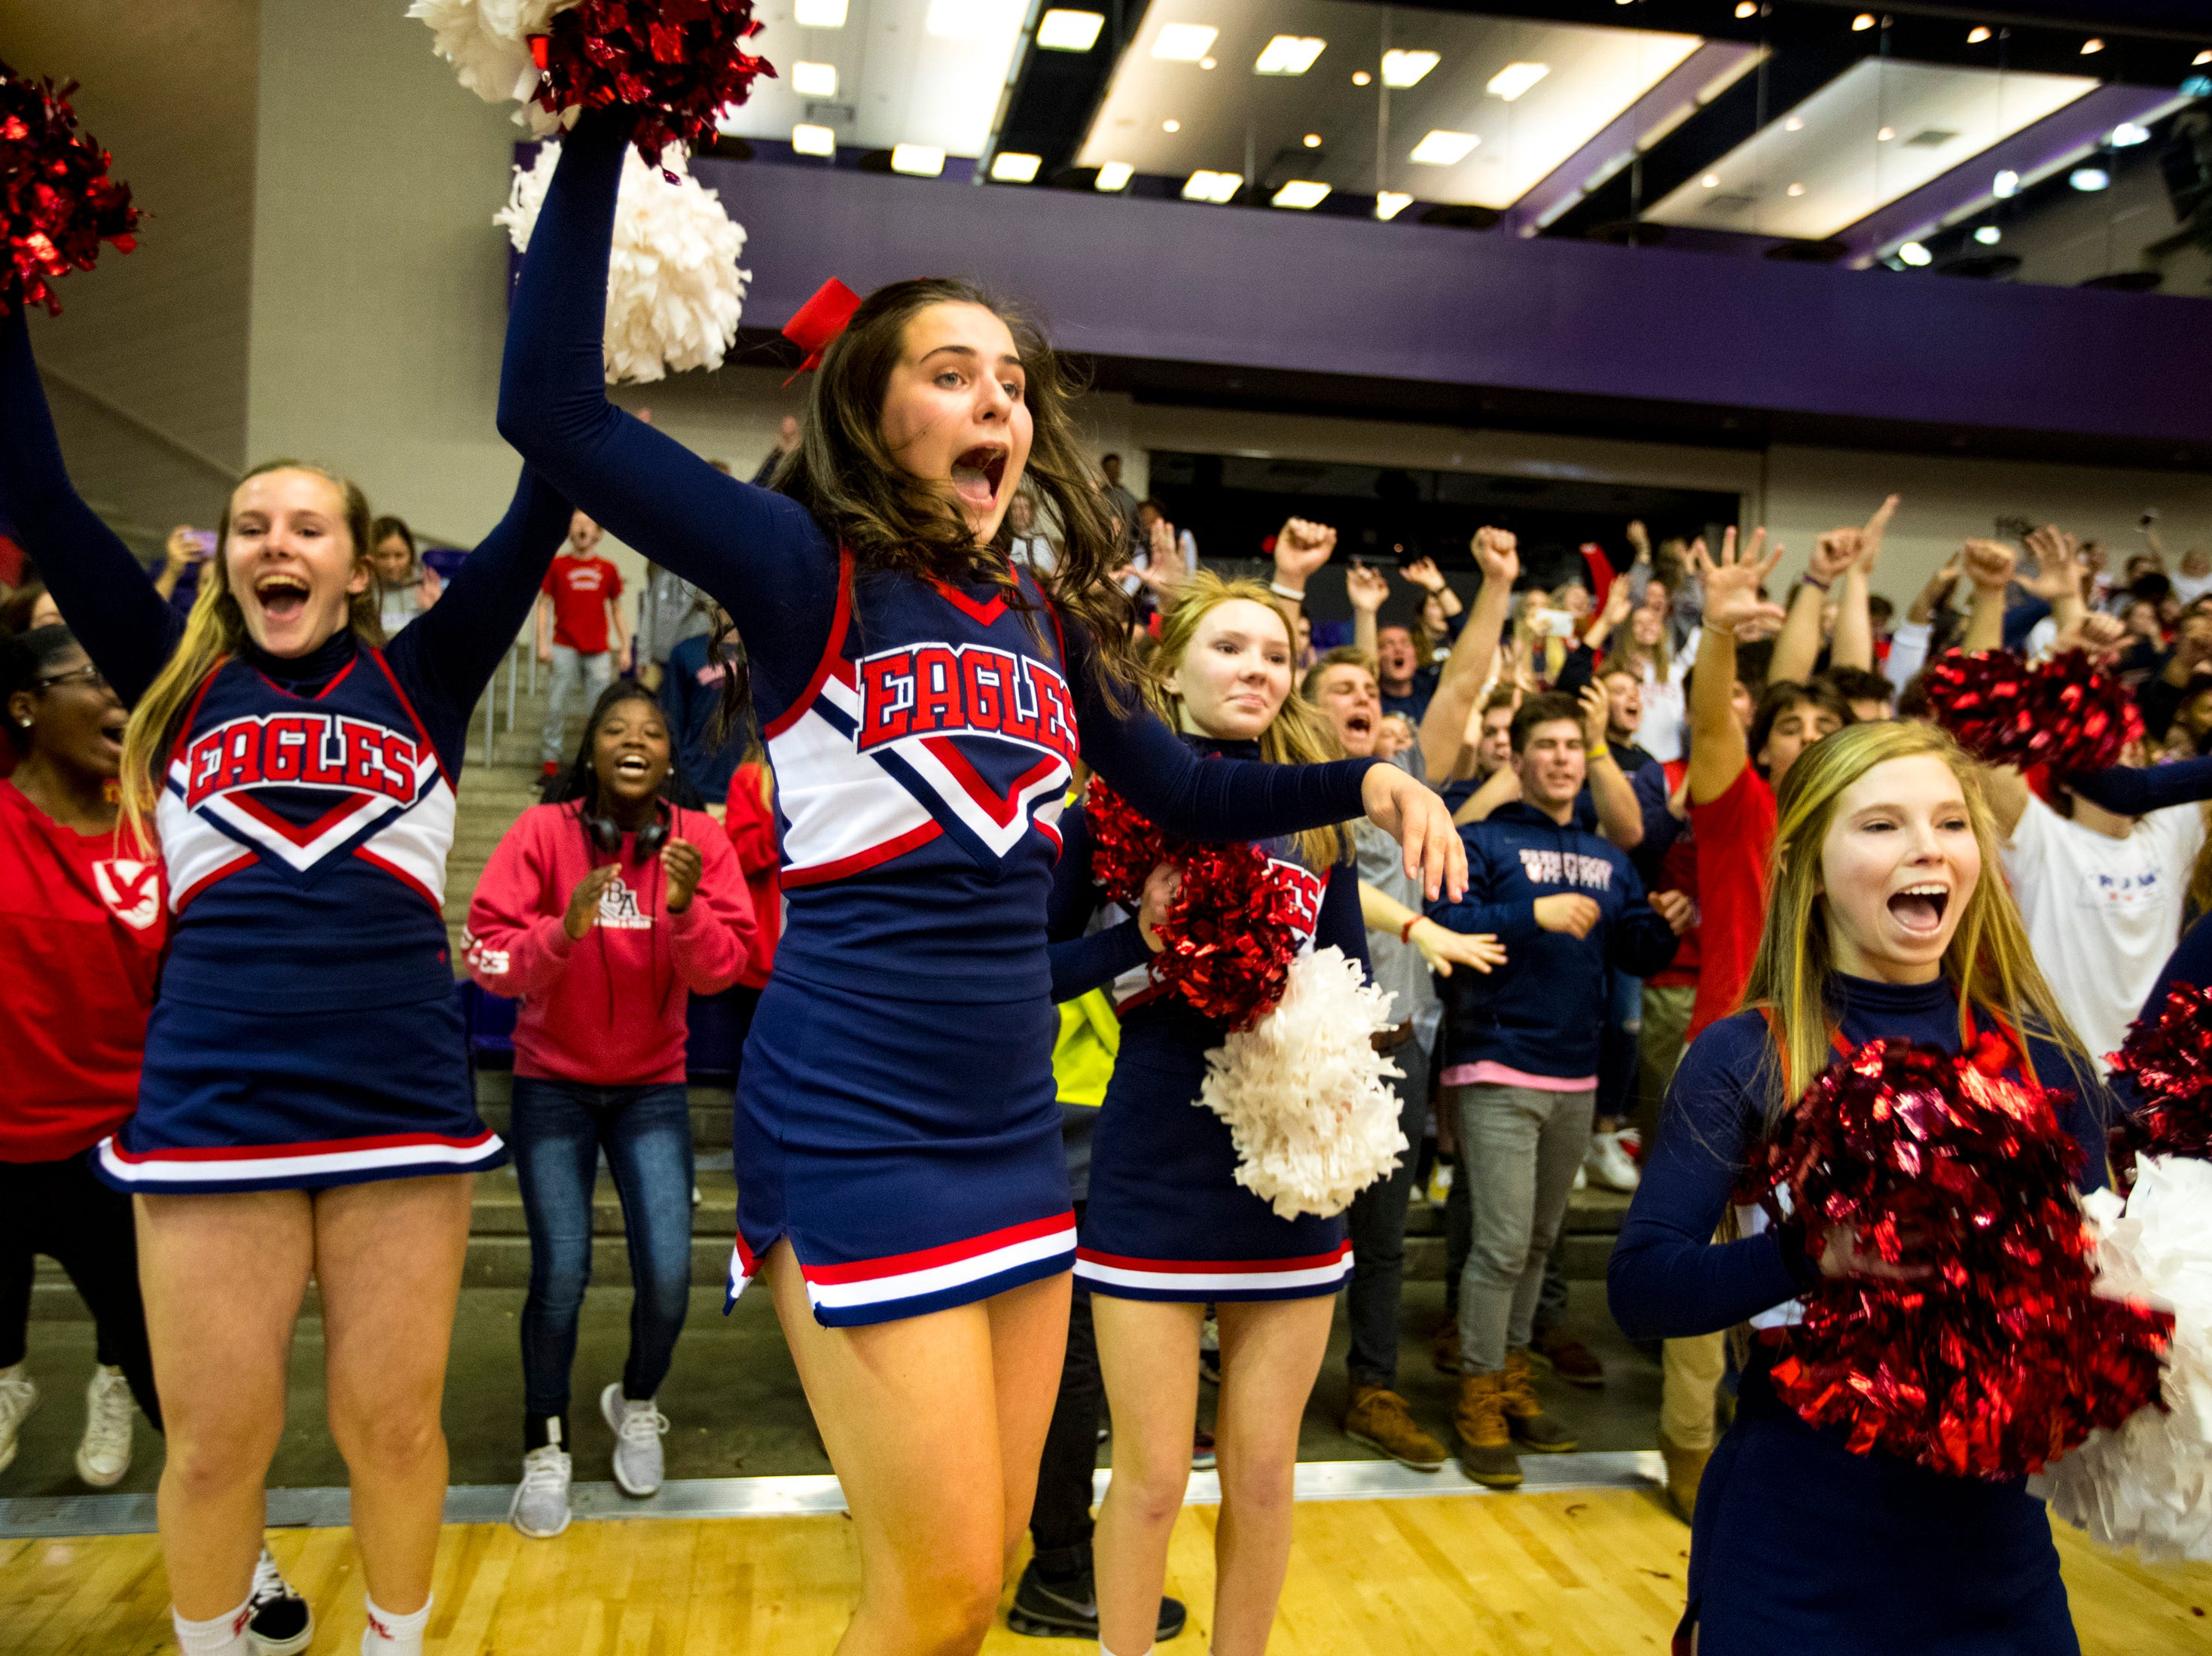 Brentwood Academy's cheerleaders react to time expiring with Brentwood leading 39-37 during Brentwood Academy's game against Baylor in the semifinal round of the TSSAA Division II Class AA State Championships at Lipscomb University's Allen Arena in Nashville on Thursday, Feb. 28, 2019.